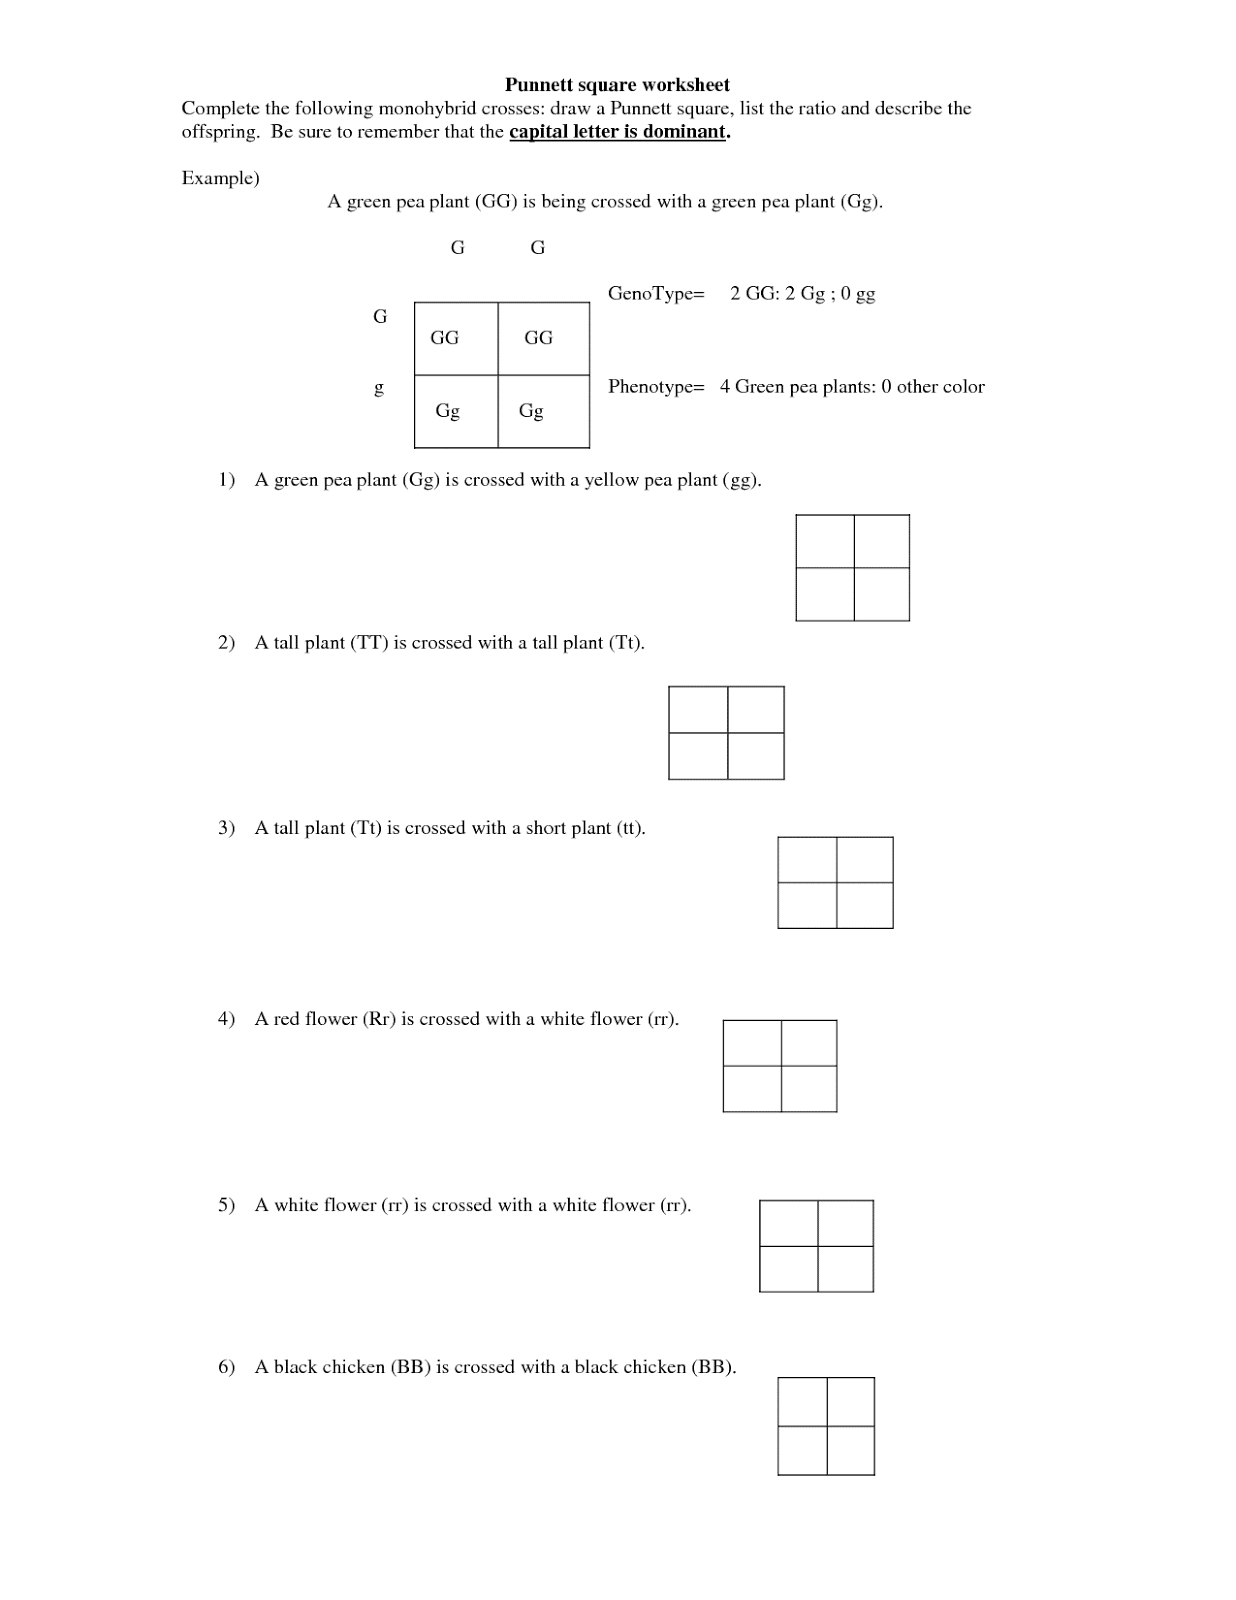 Monohybrid Cross Worksheet Answer Key Worksheets For School - Leafsea